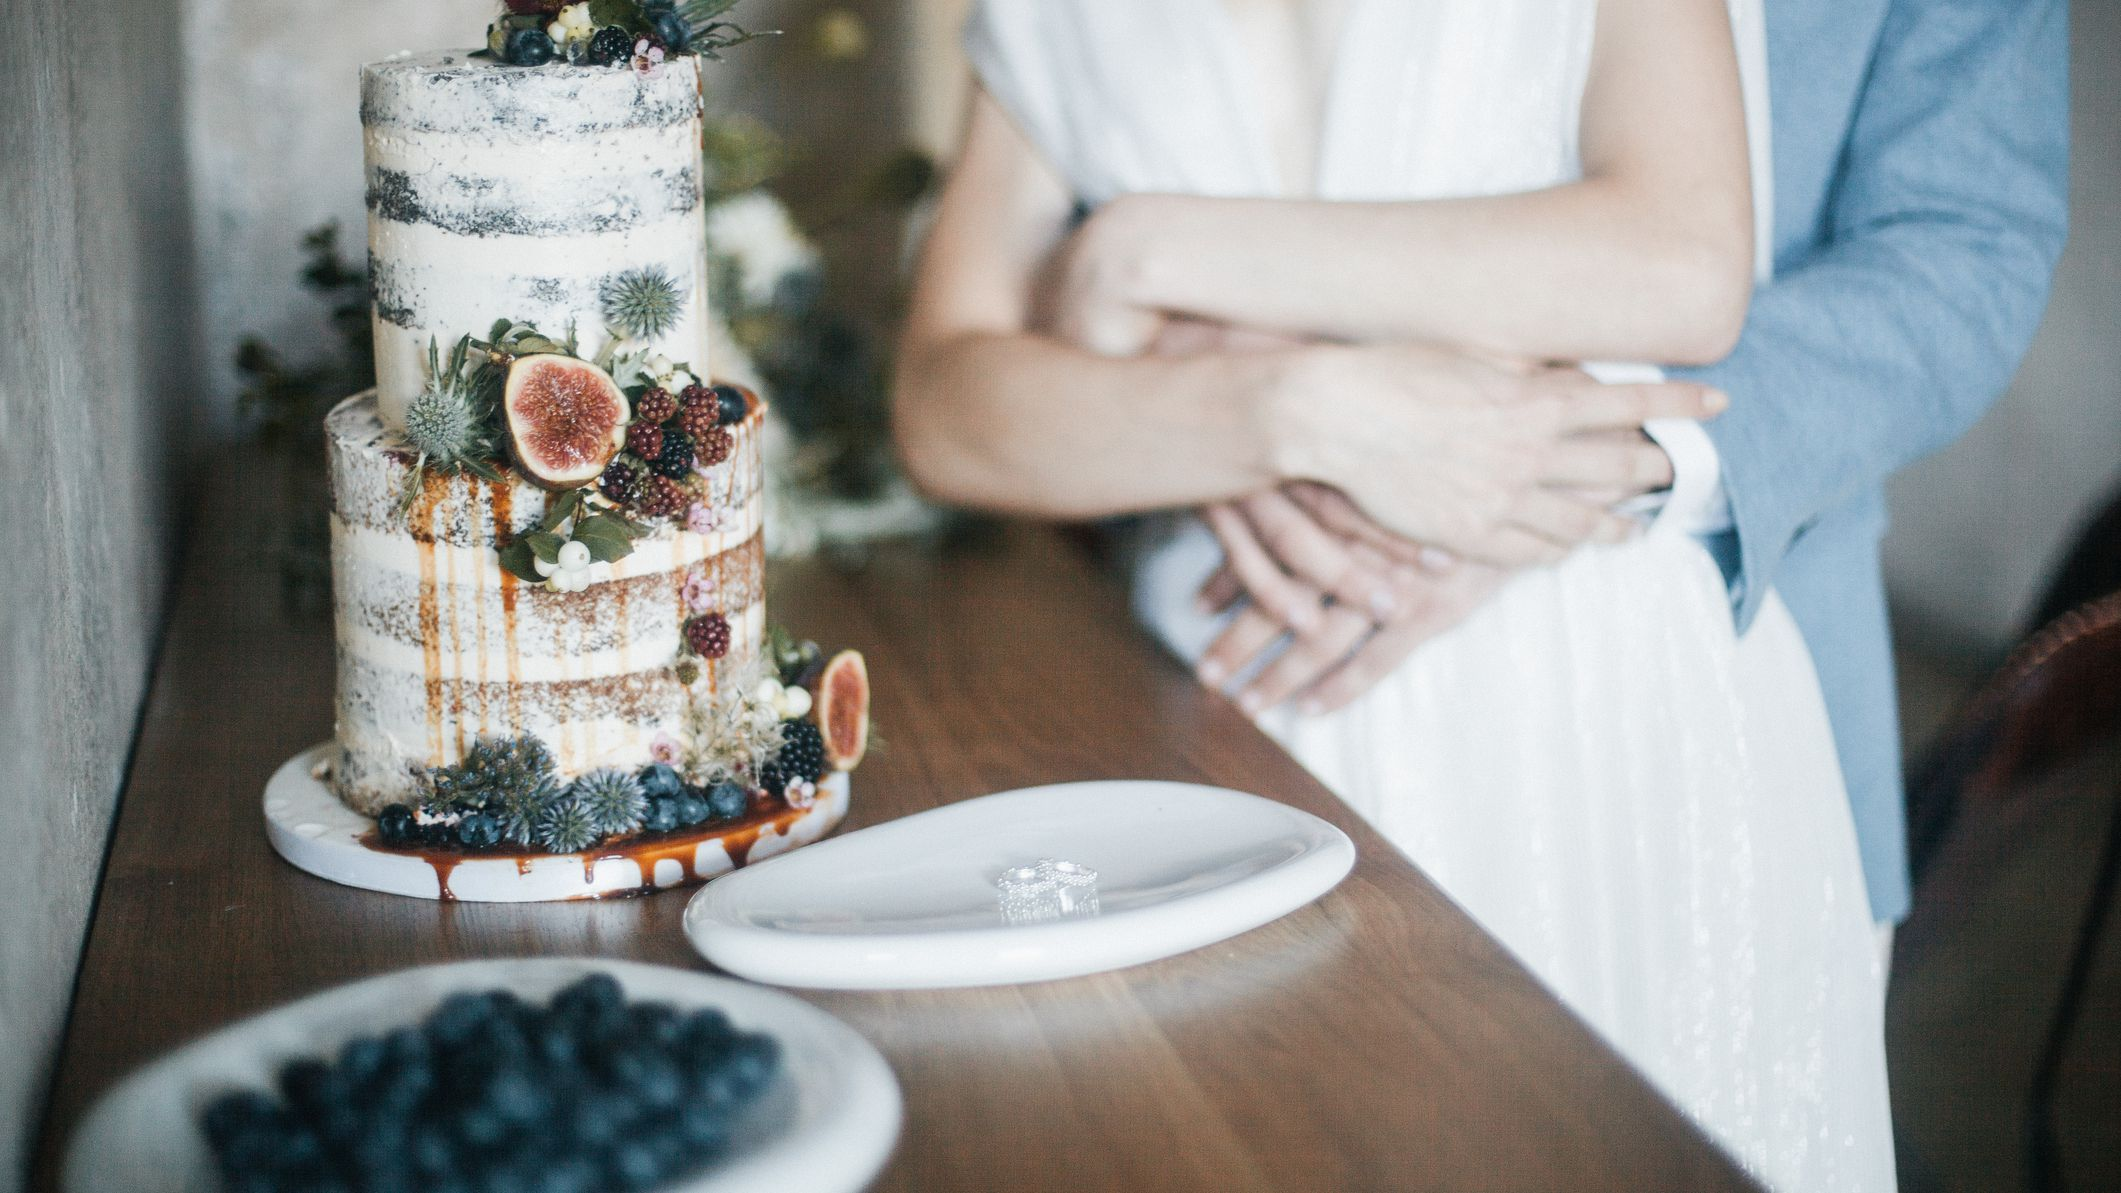 Everything You Need To Know About Preserving The Top Of Your Wedding Cake